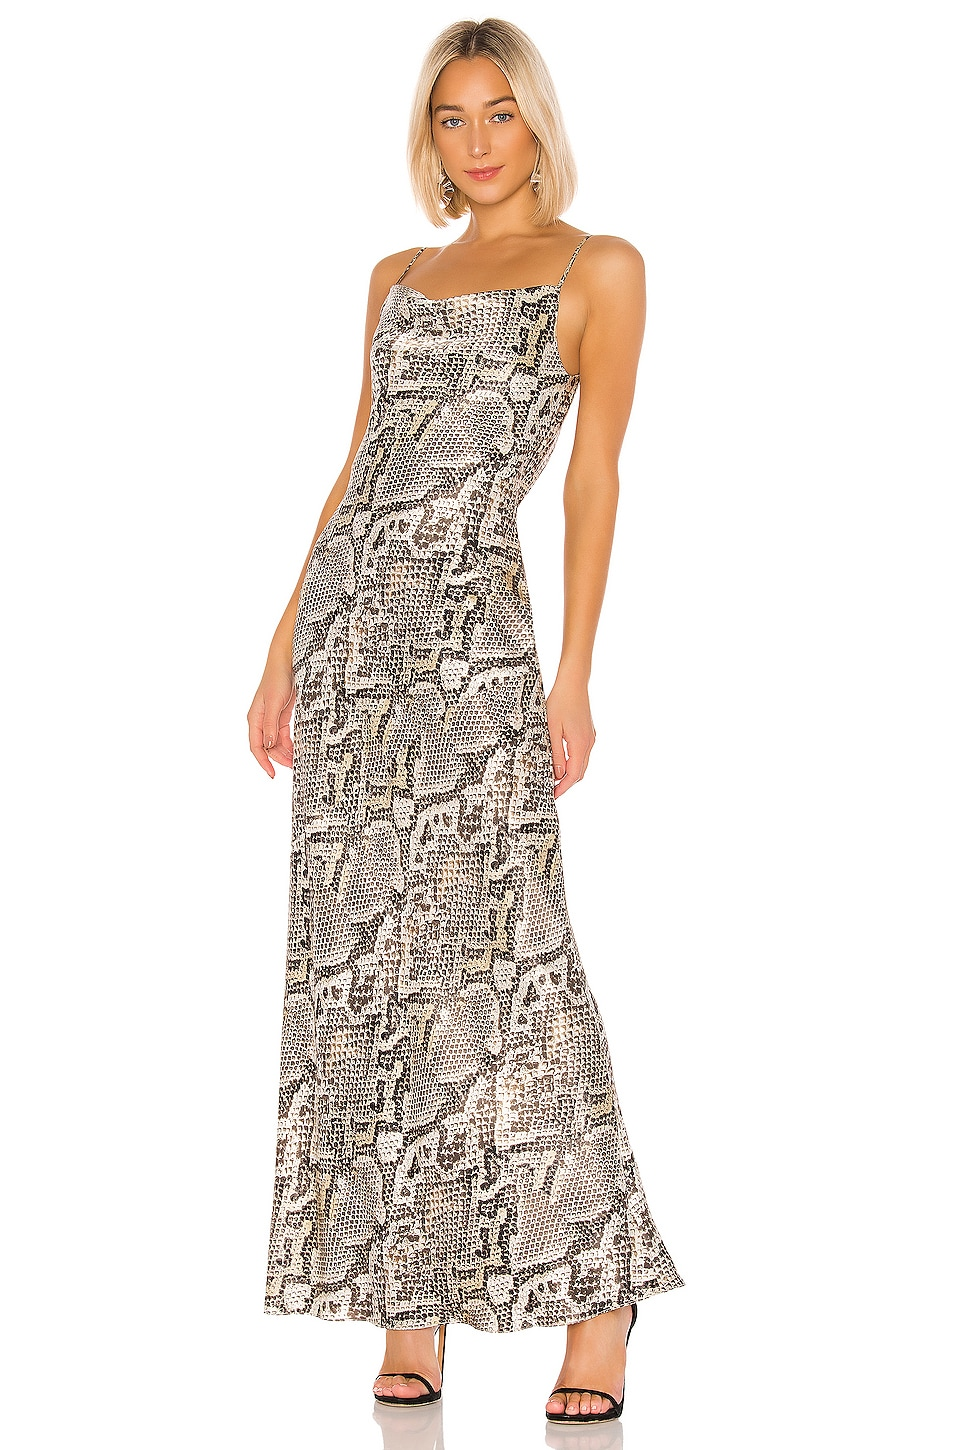 L'AGENCE Arianne Bias Maxi Slip Dress in Natural Multi Python